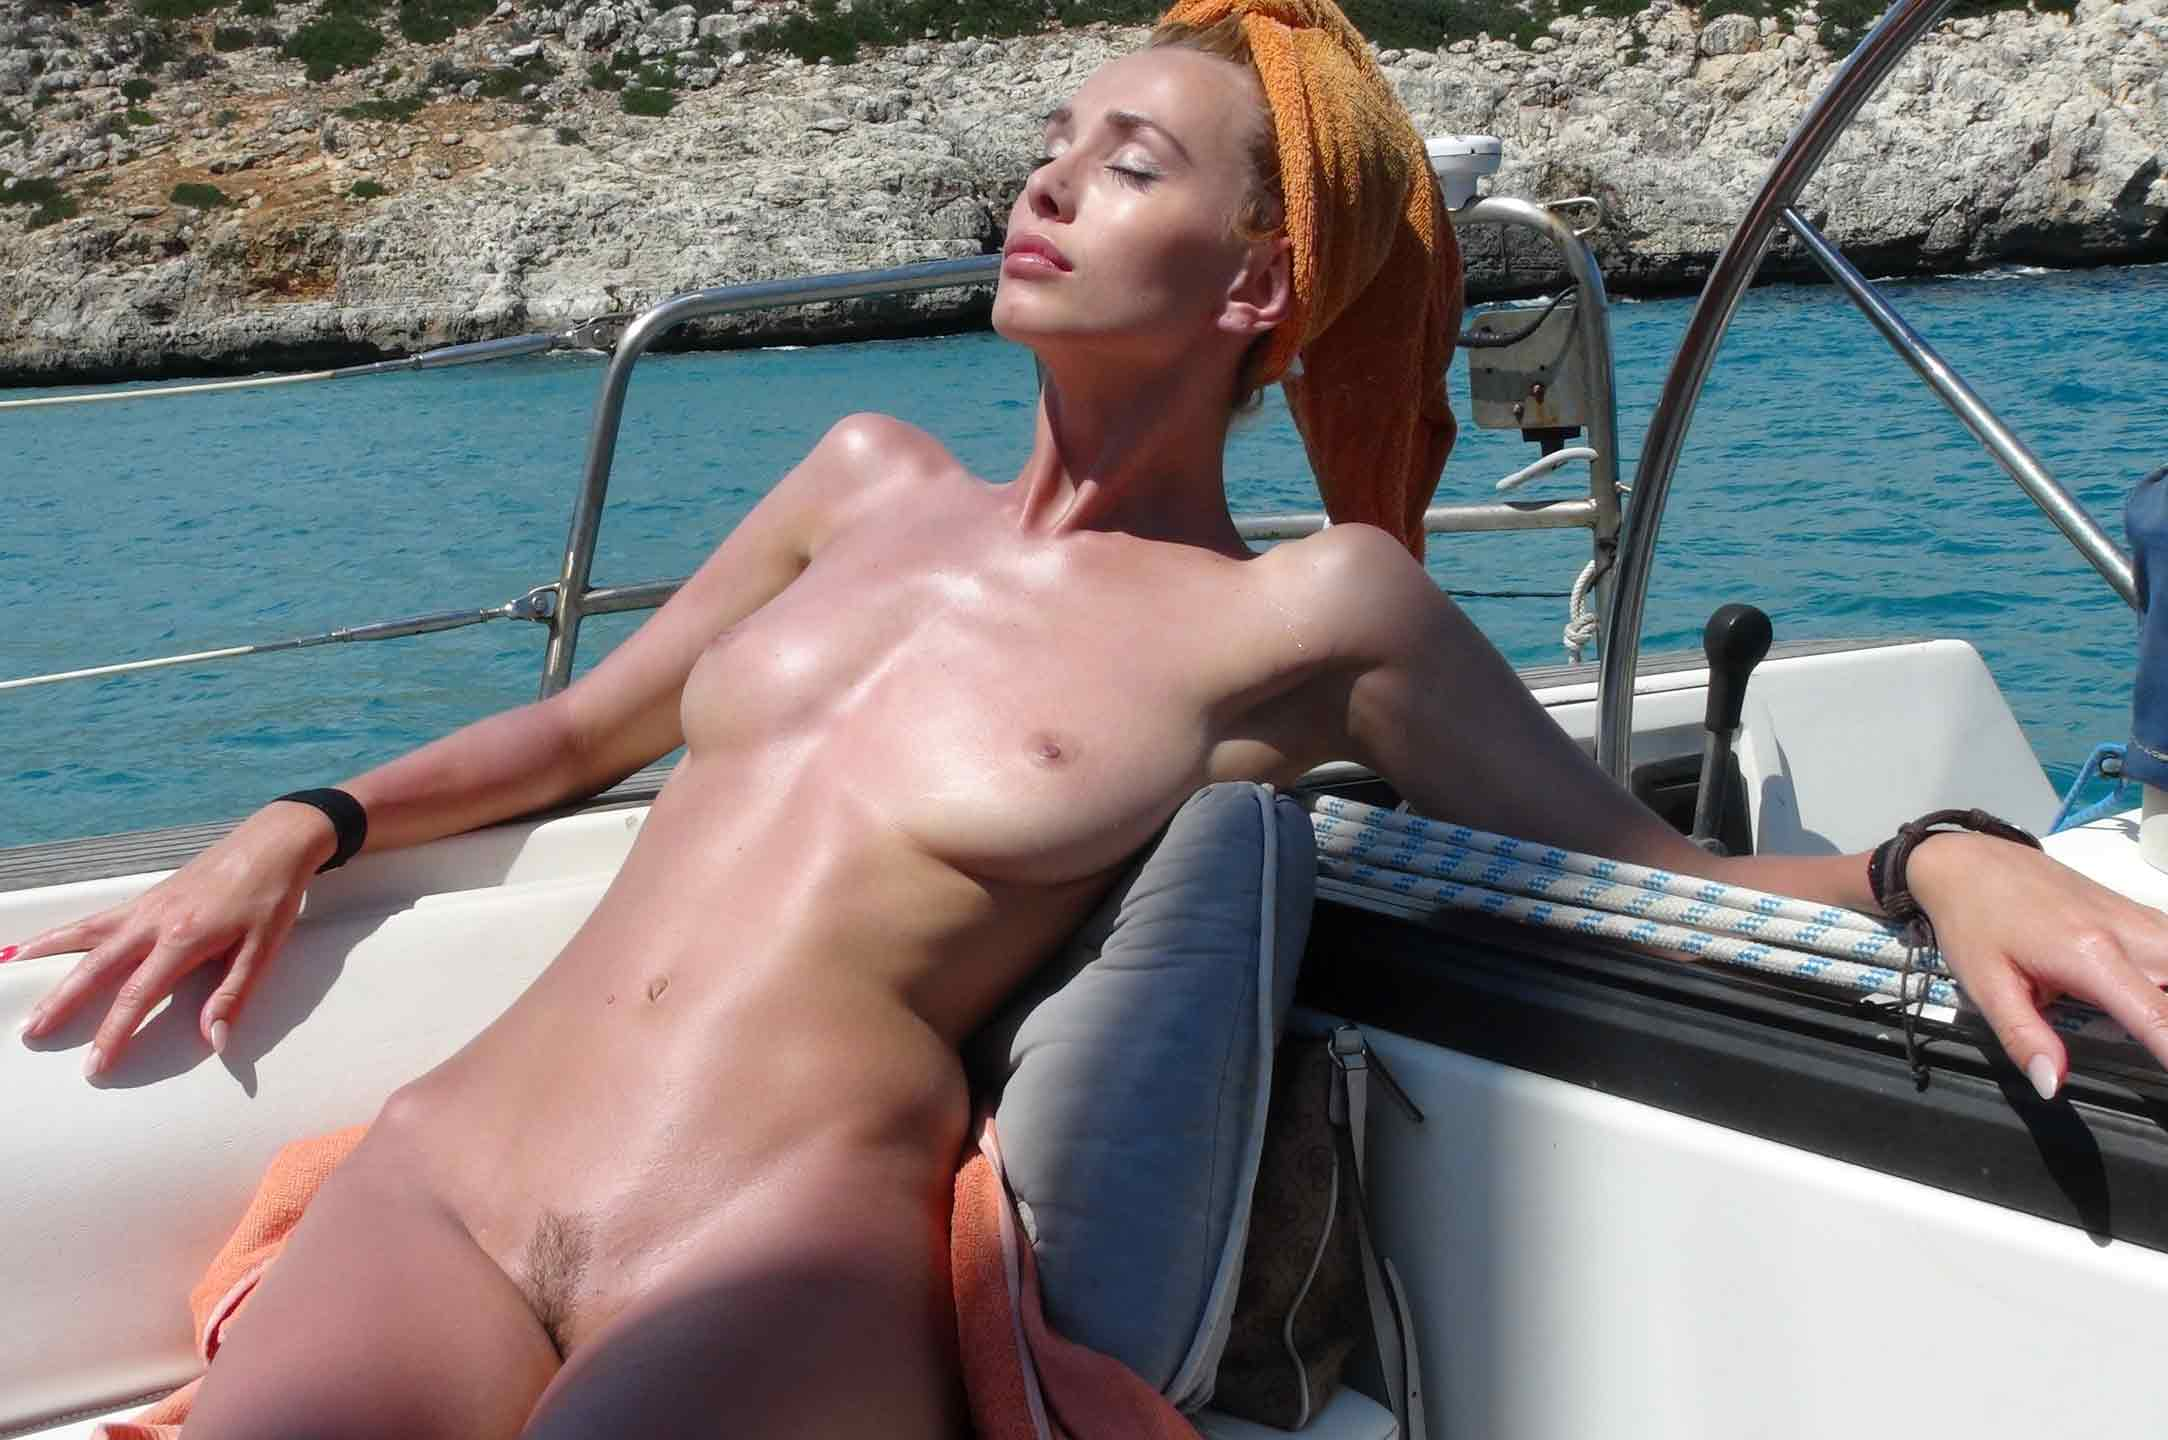 Images of naked girls. Free and Wild 15 - Dominika sunbakes on yacht